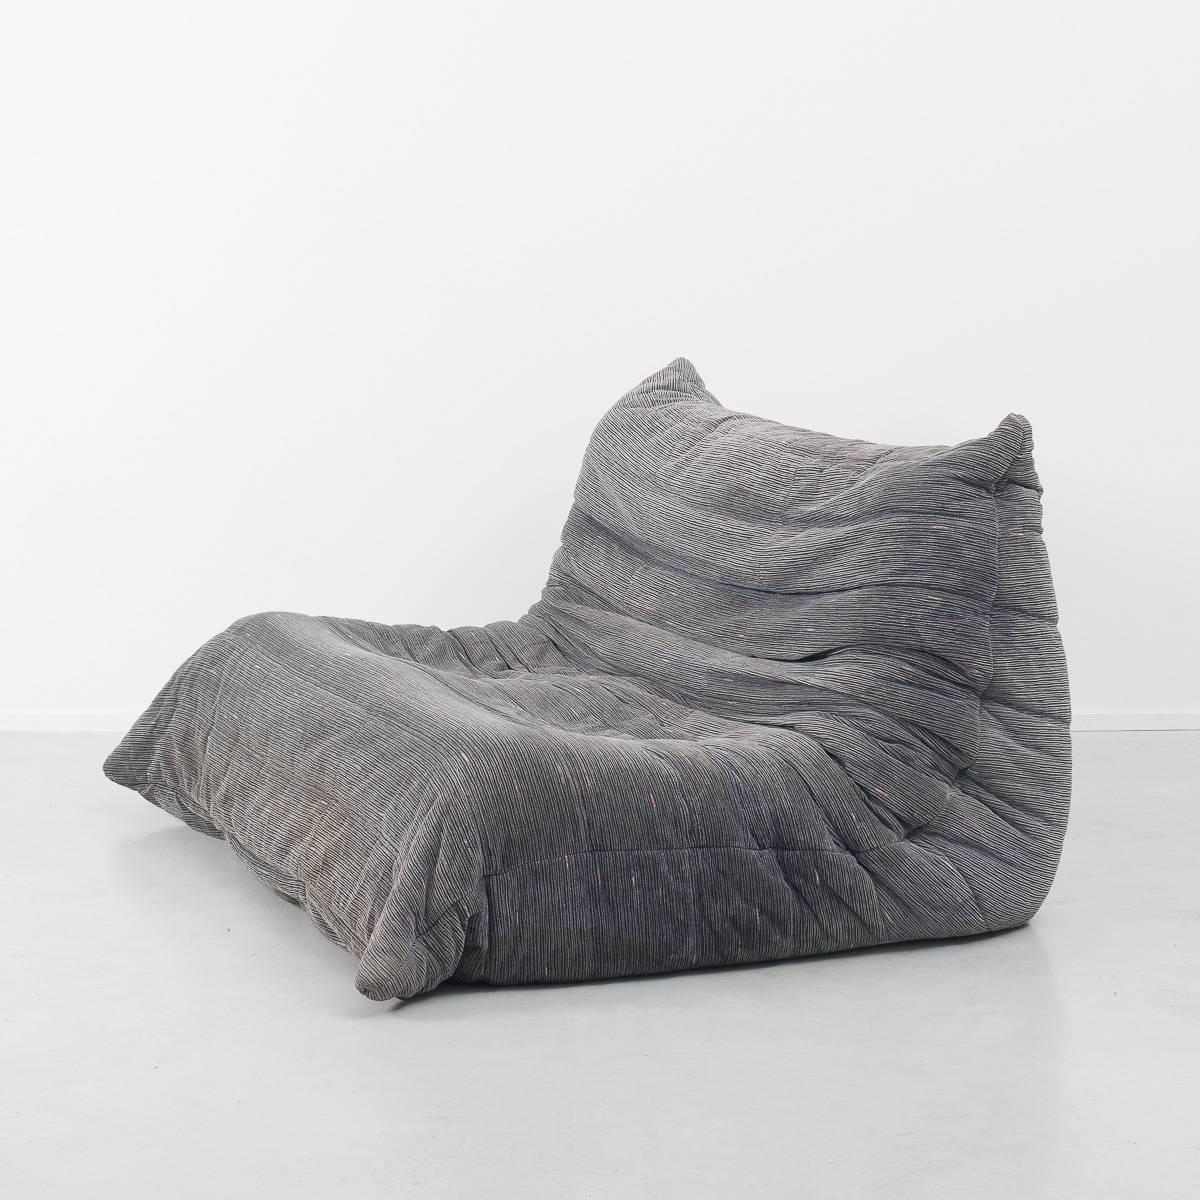 michel ducaroy for ligne roset twoseat sofa 2